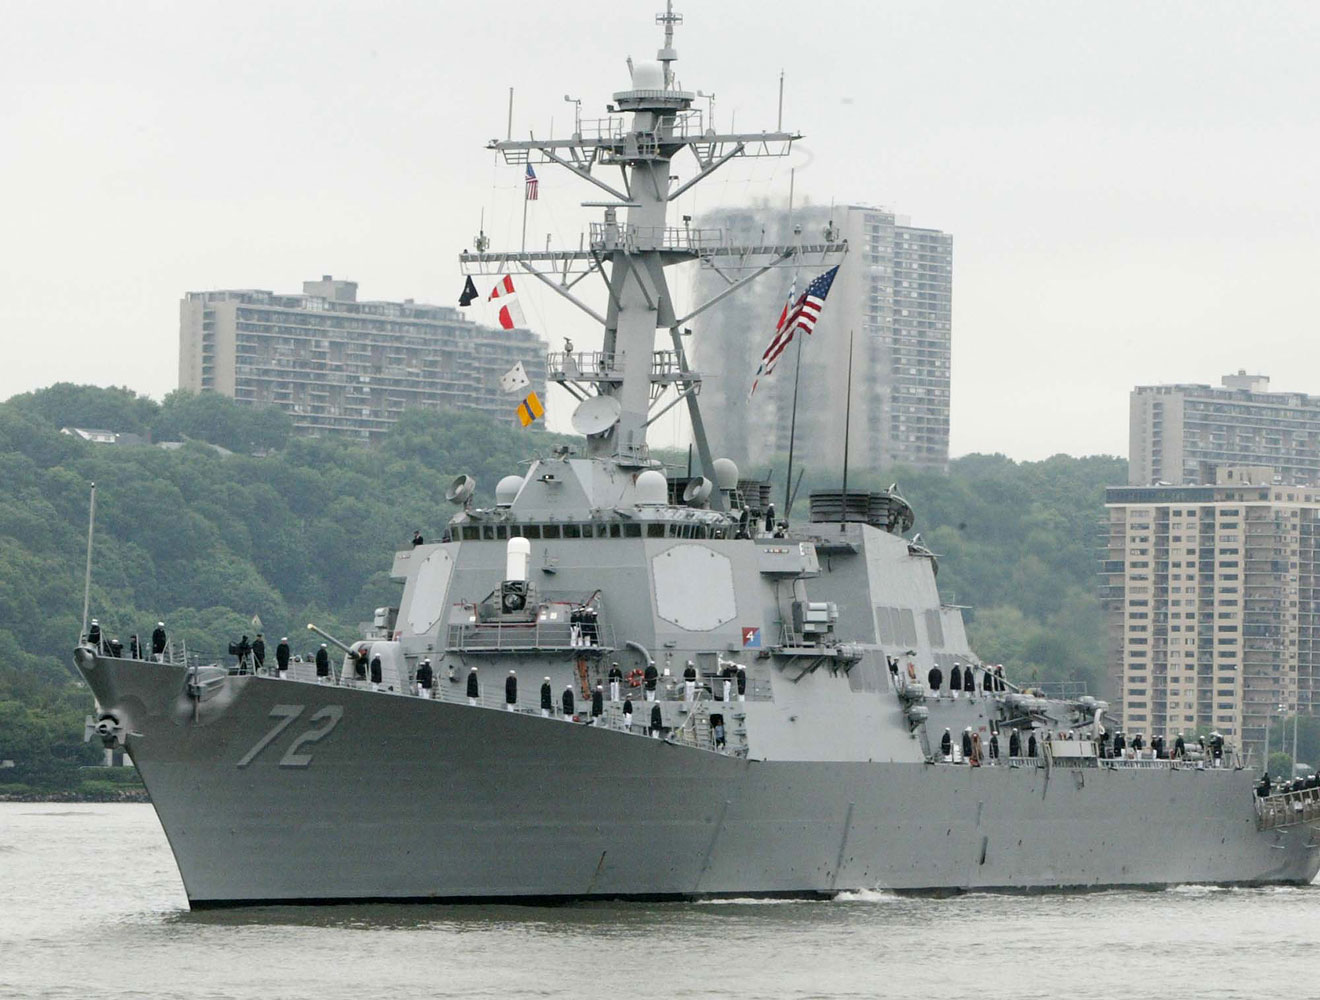 The USS Mahan moves up the Hudson River in New York during Fleet Week in 2004.